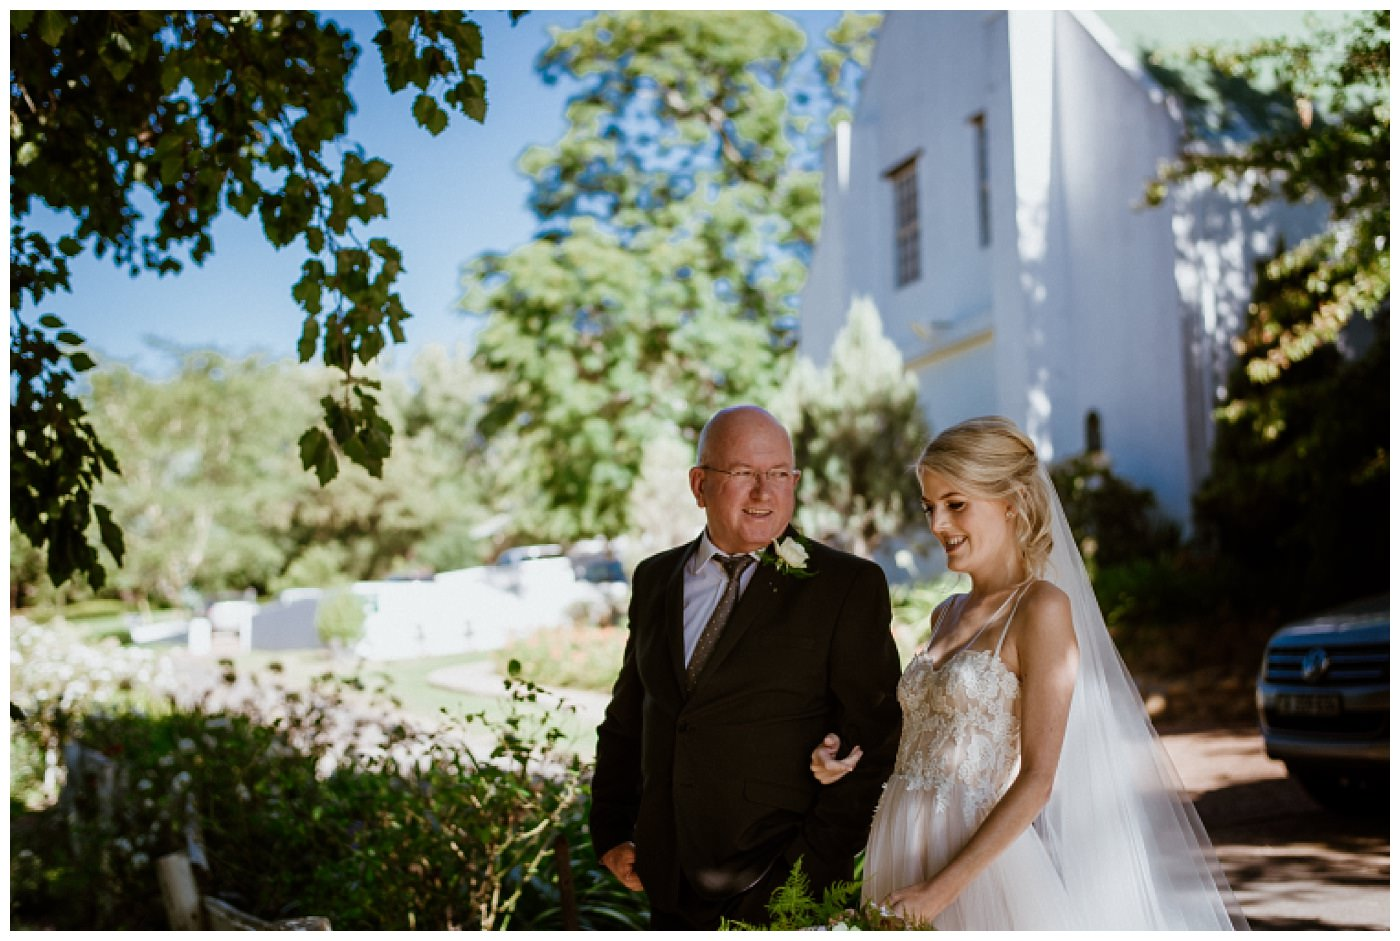 Knorhoek wedding photography